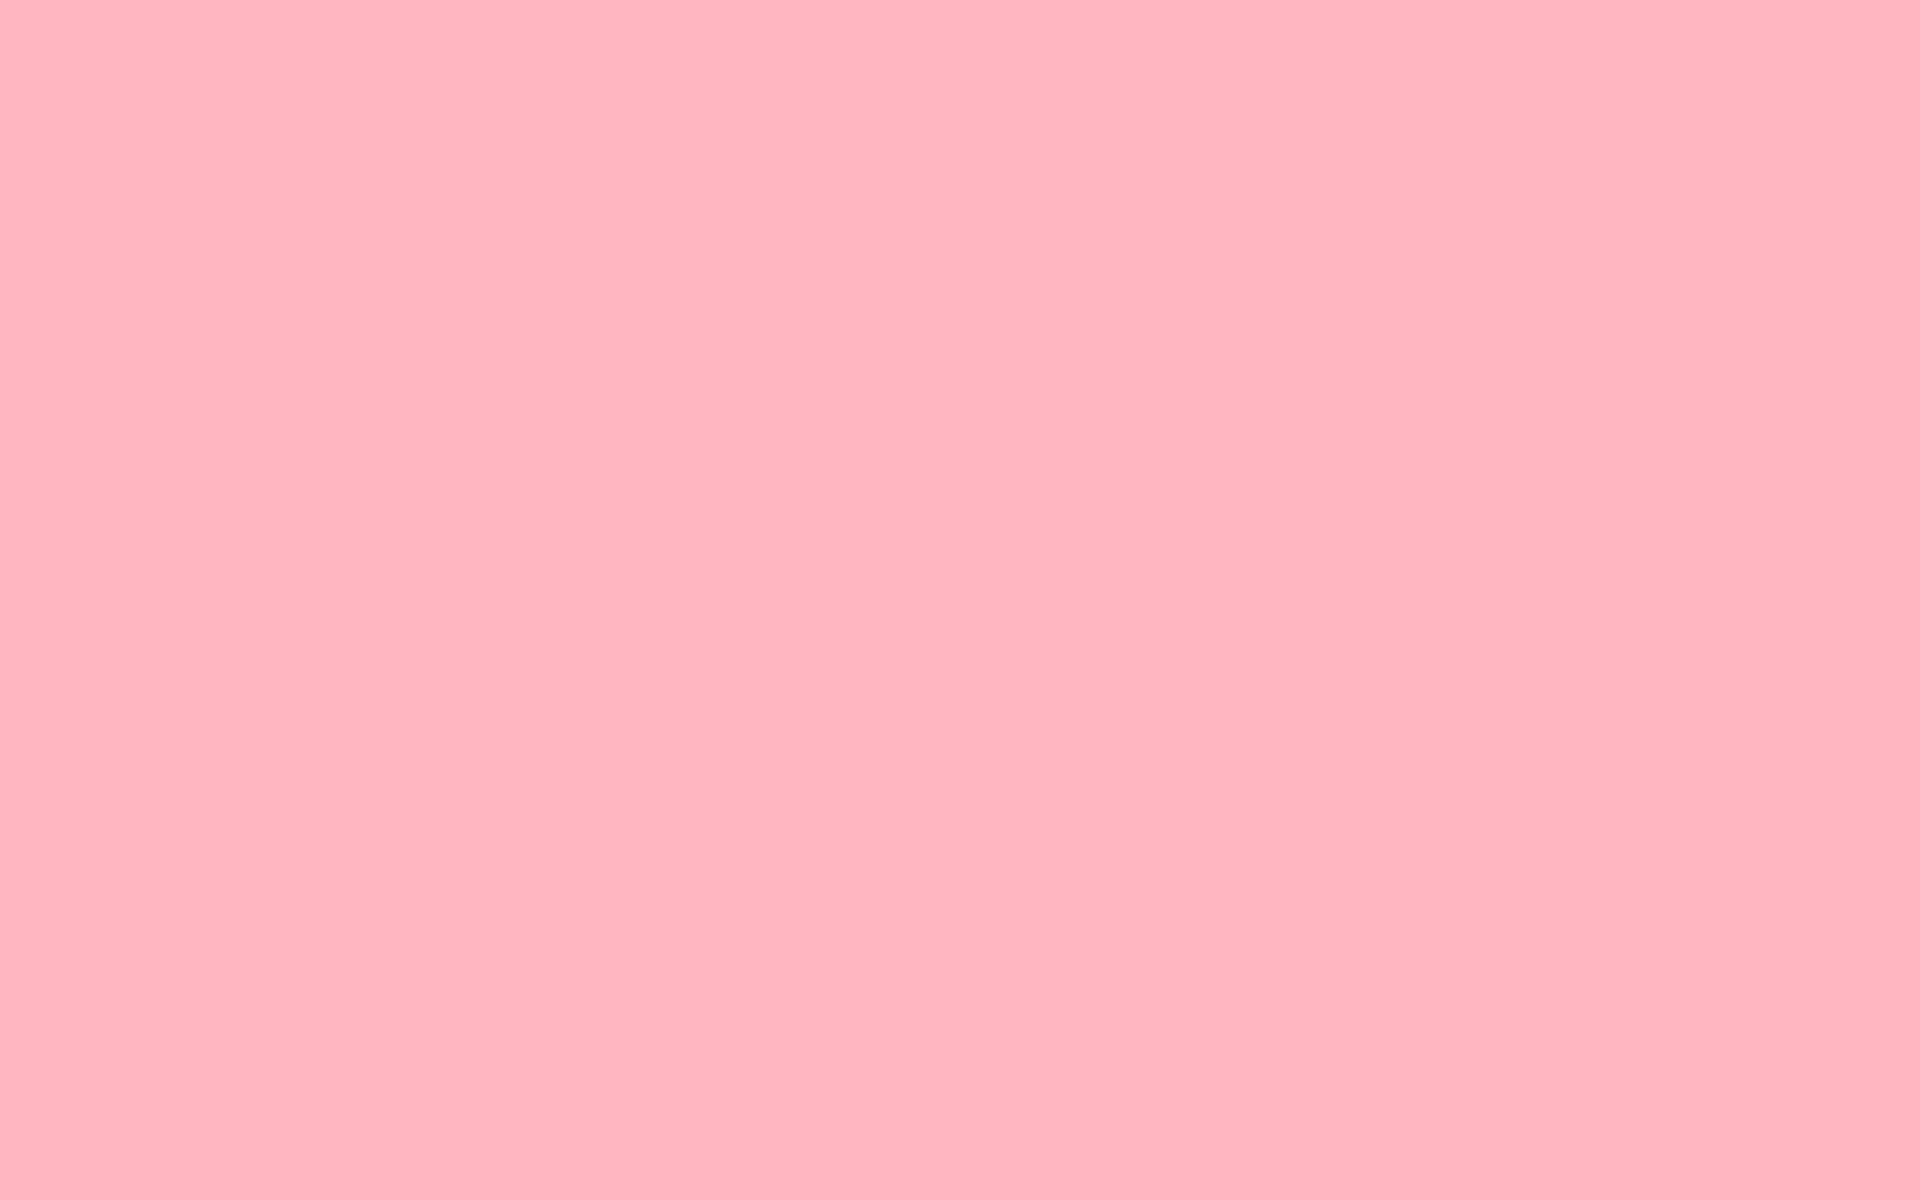 1920x1200 Light Pink Solid Color Background